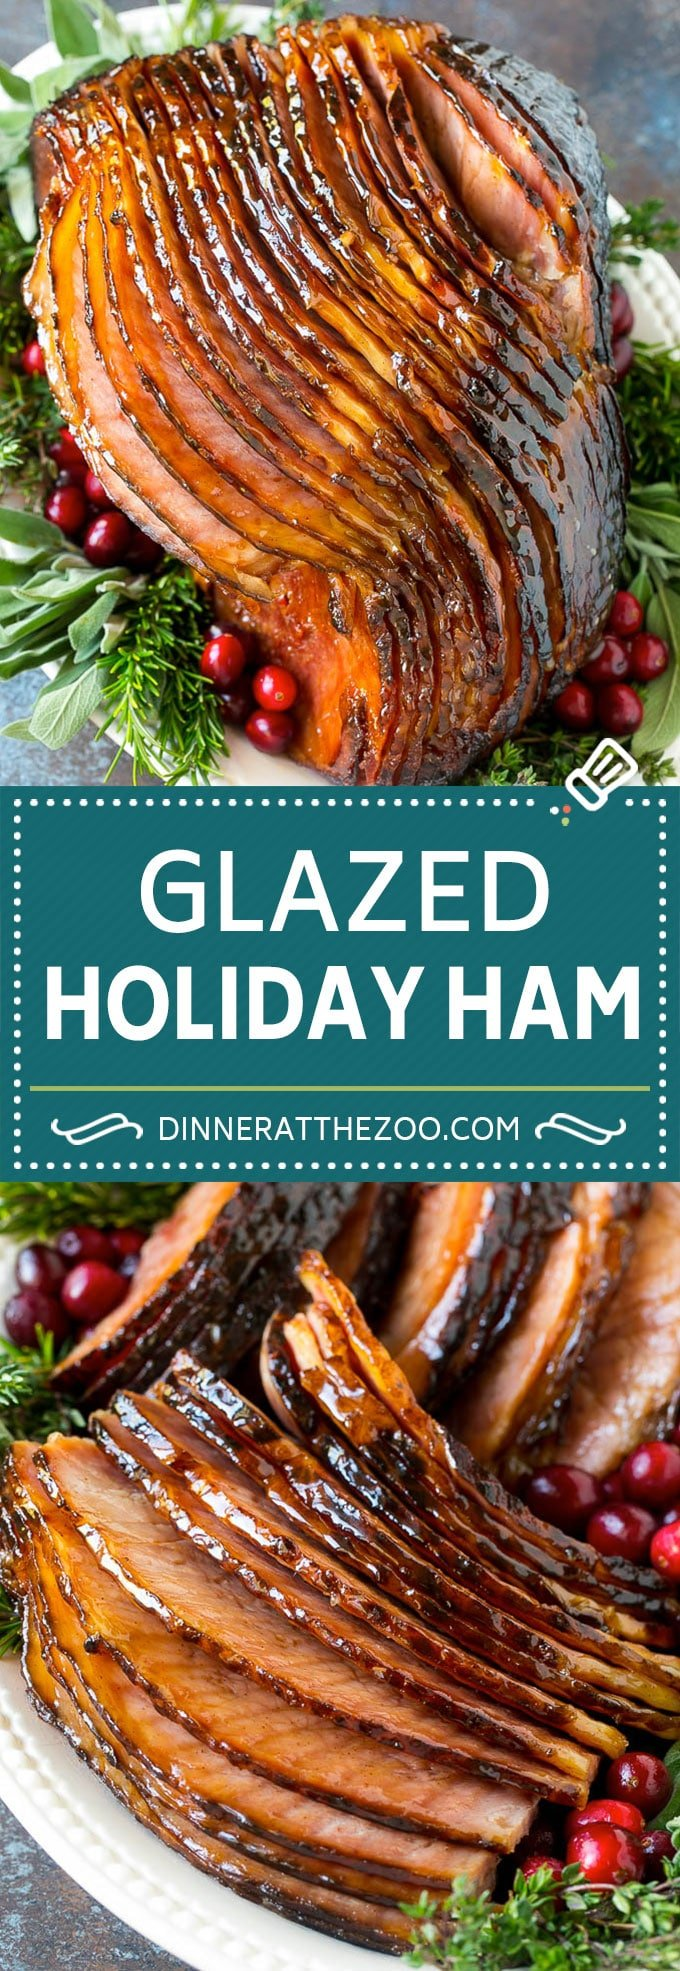 Brown Sugar Glazed Ham Recipe | Holiday Ham | Ham Glaze | Christmas Ham #christmas #thanksgiving #easter #ham #dinner #dinneratthezoo